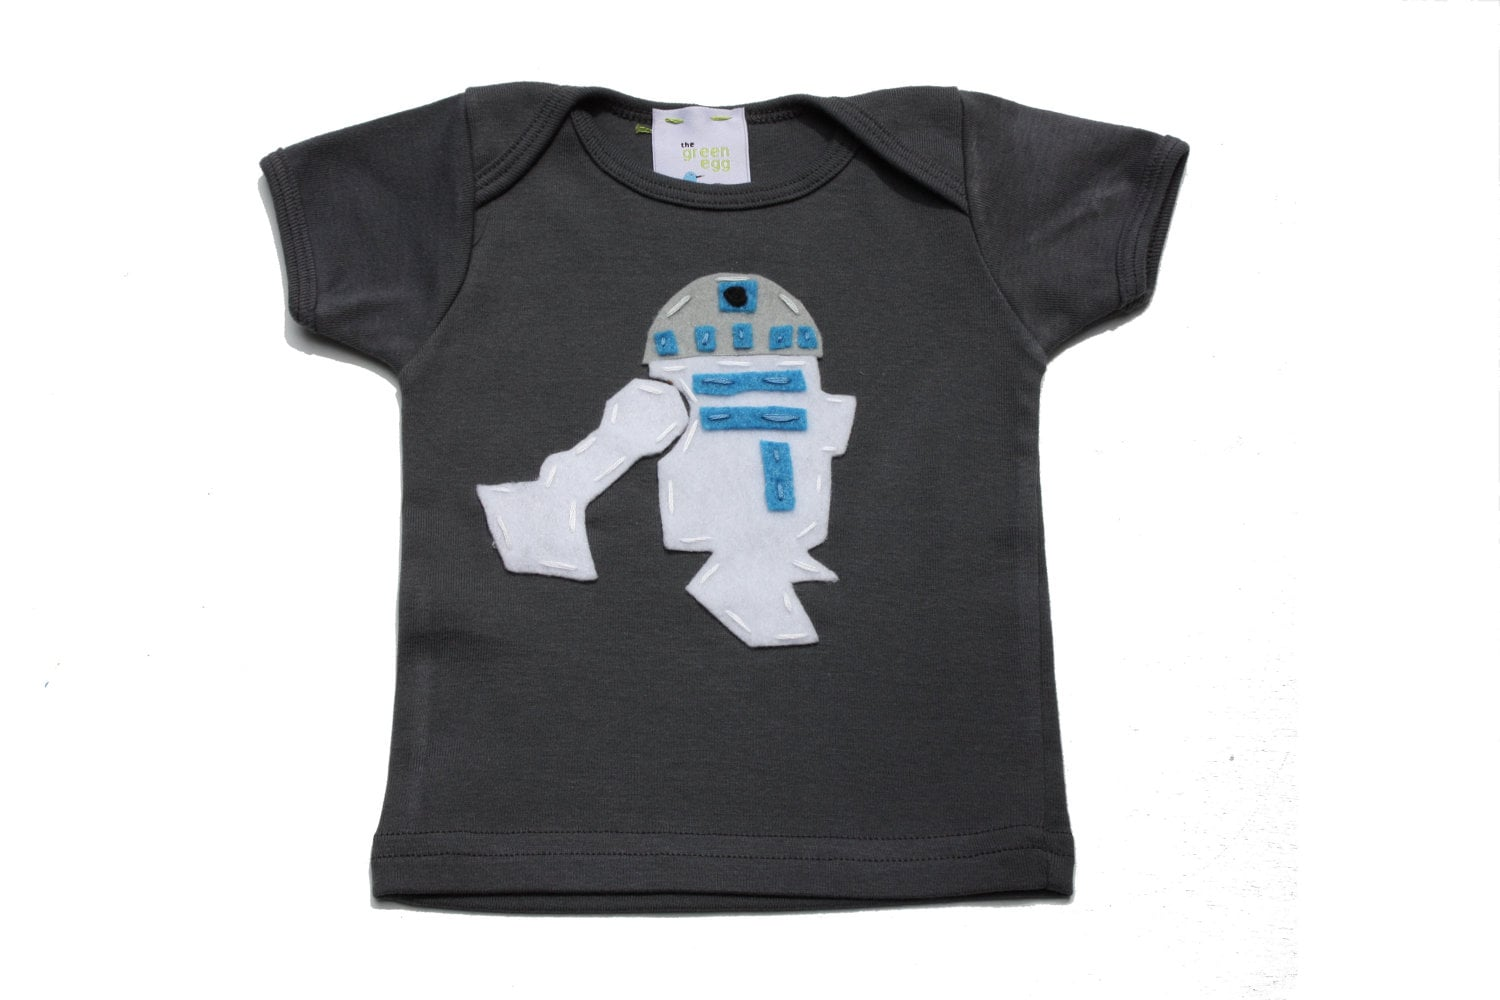 R2-D2 Star Wars Shirt ($24)